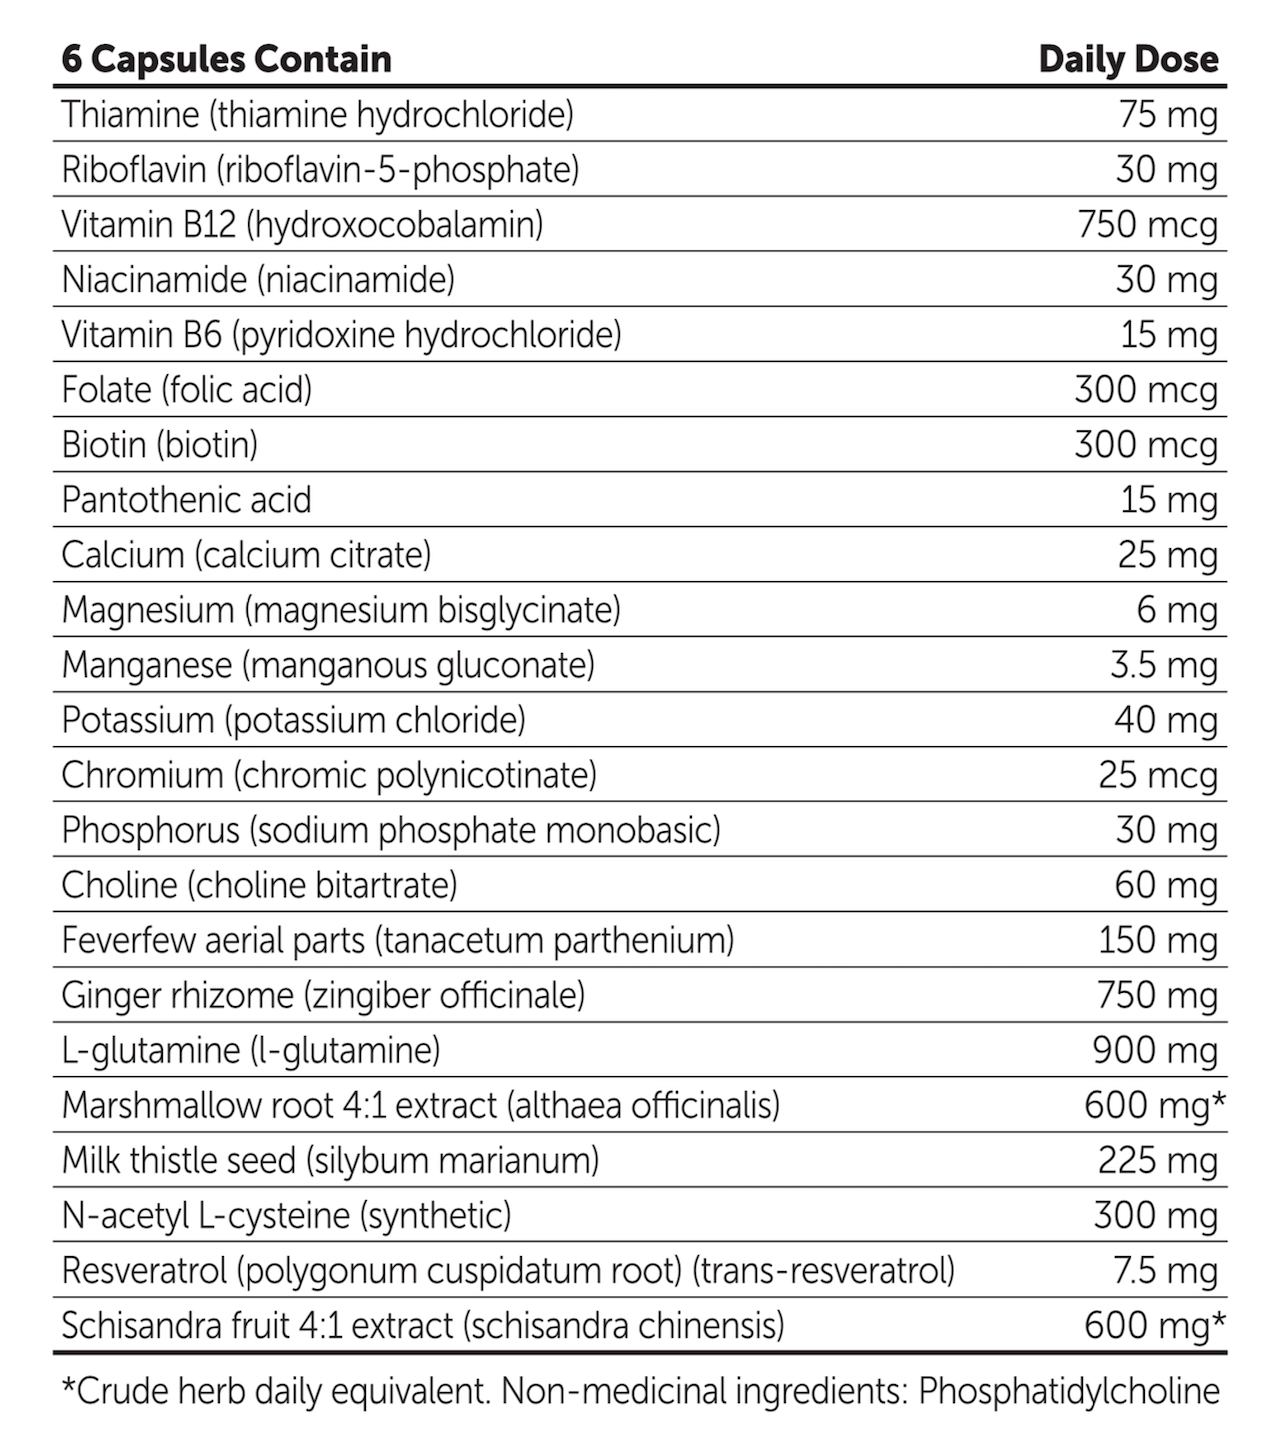 Recoup ingredient list and daily dose values